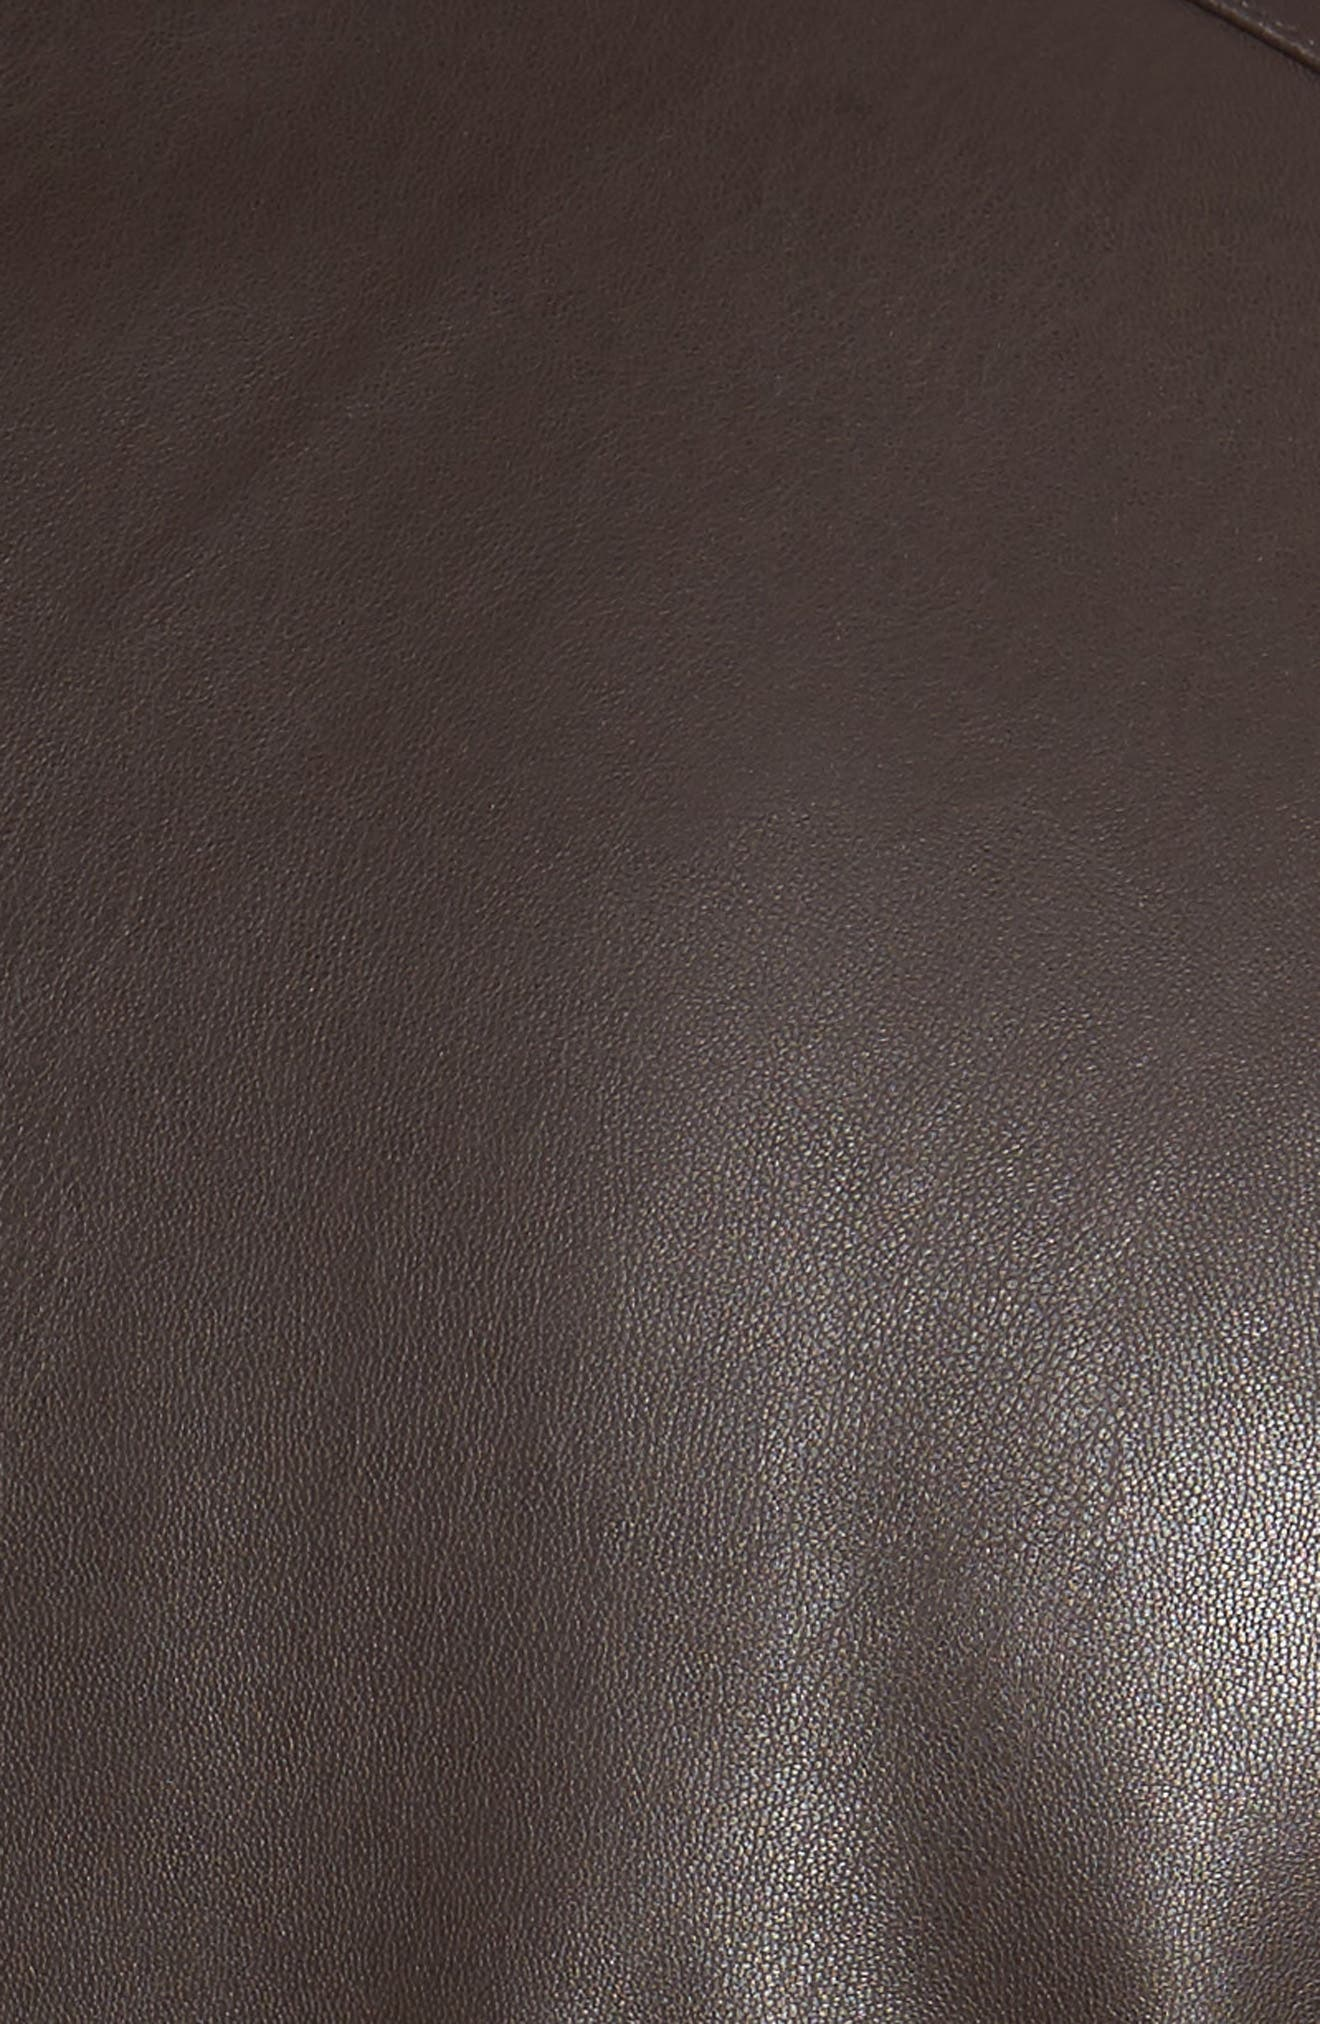 Faux Leather Jacket,                             Alternate thumbnail 5, color,                             Dark Brown